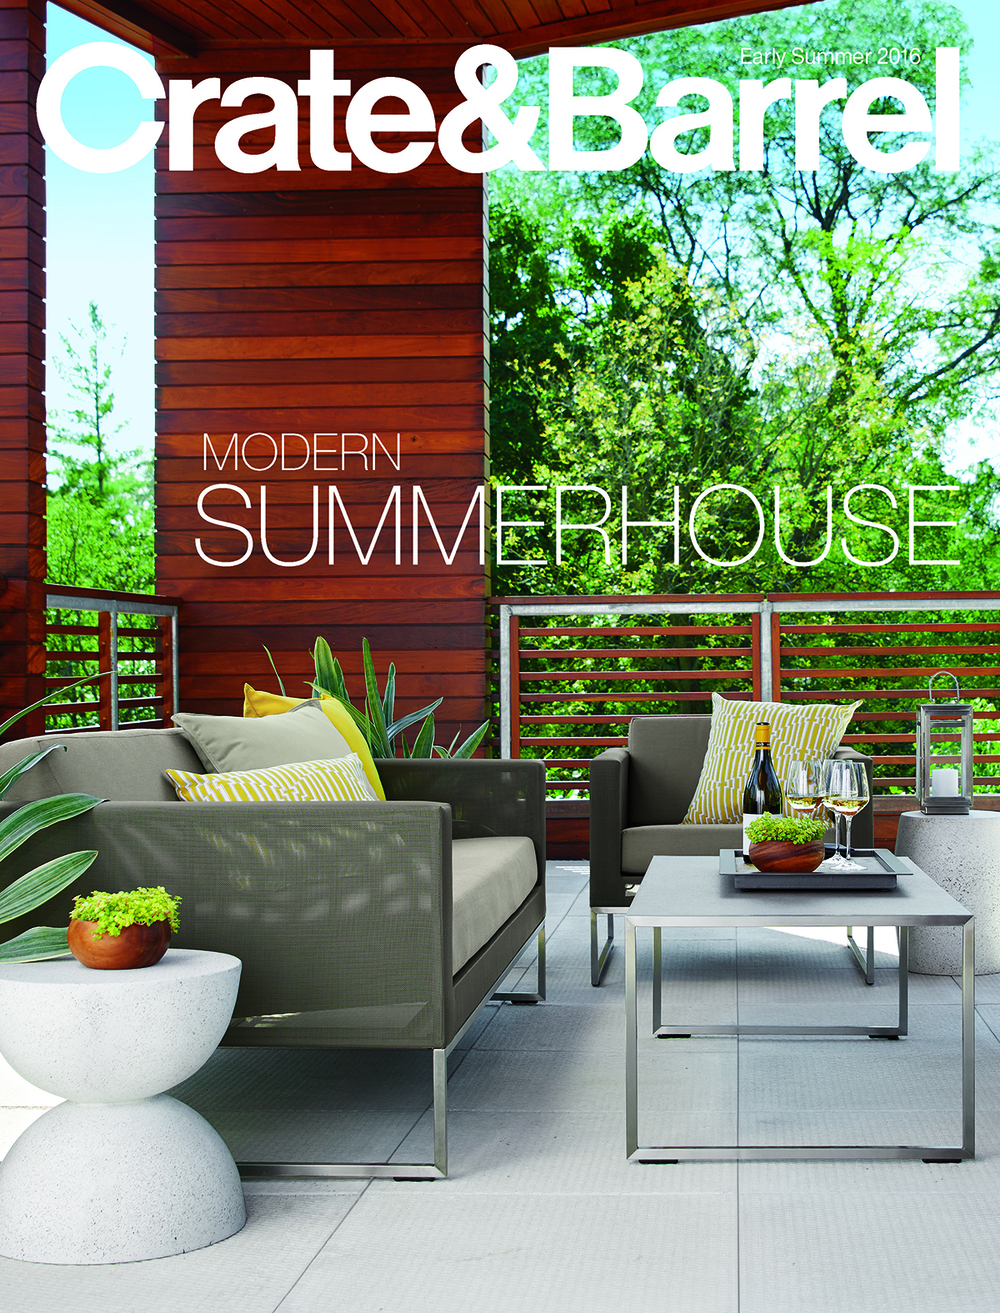 Pages from crate-barrel-modern-summerhouse-early-summer-2016-CLR.jpg